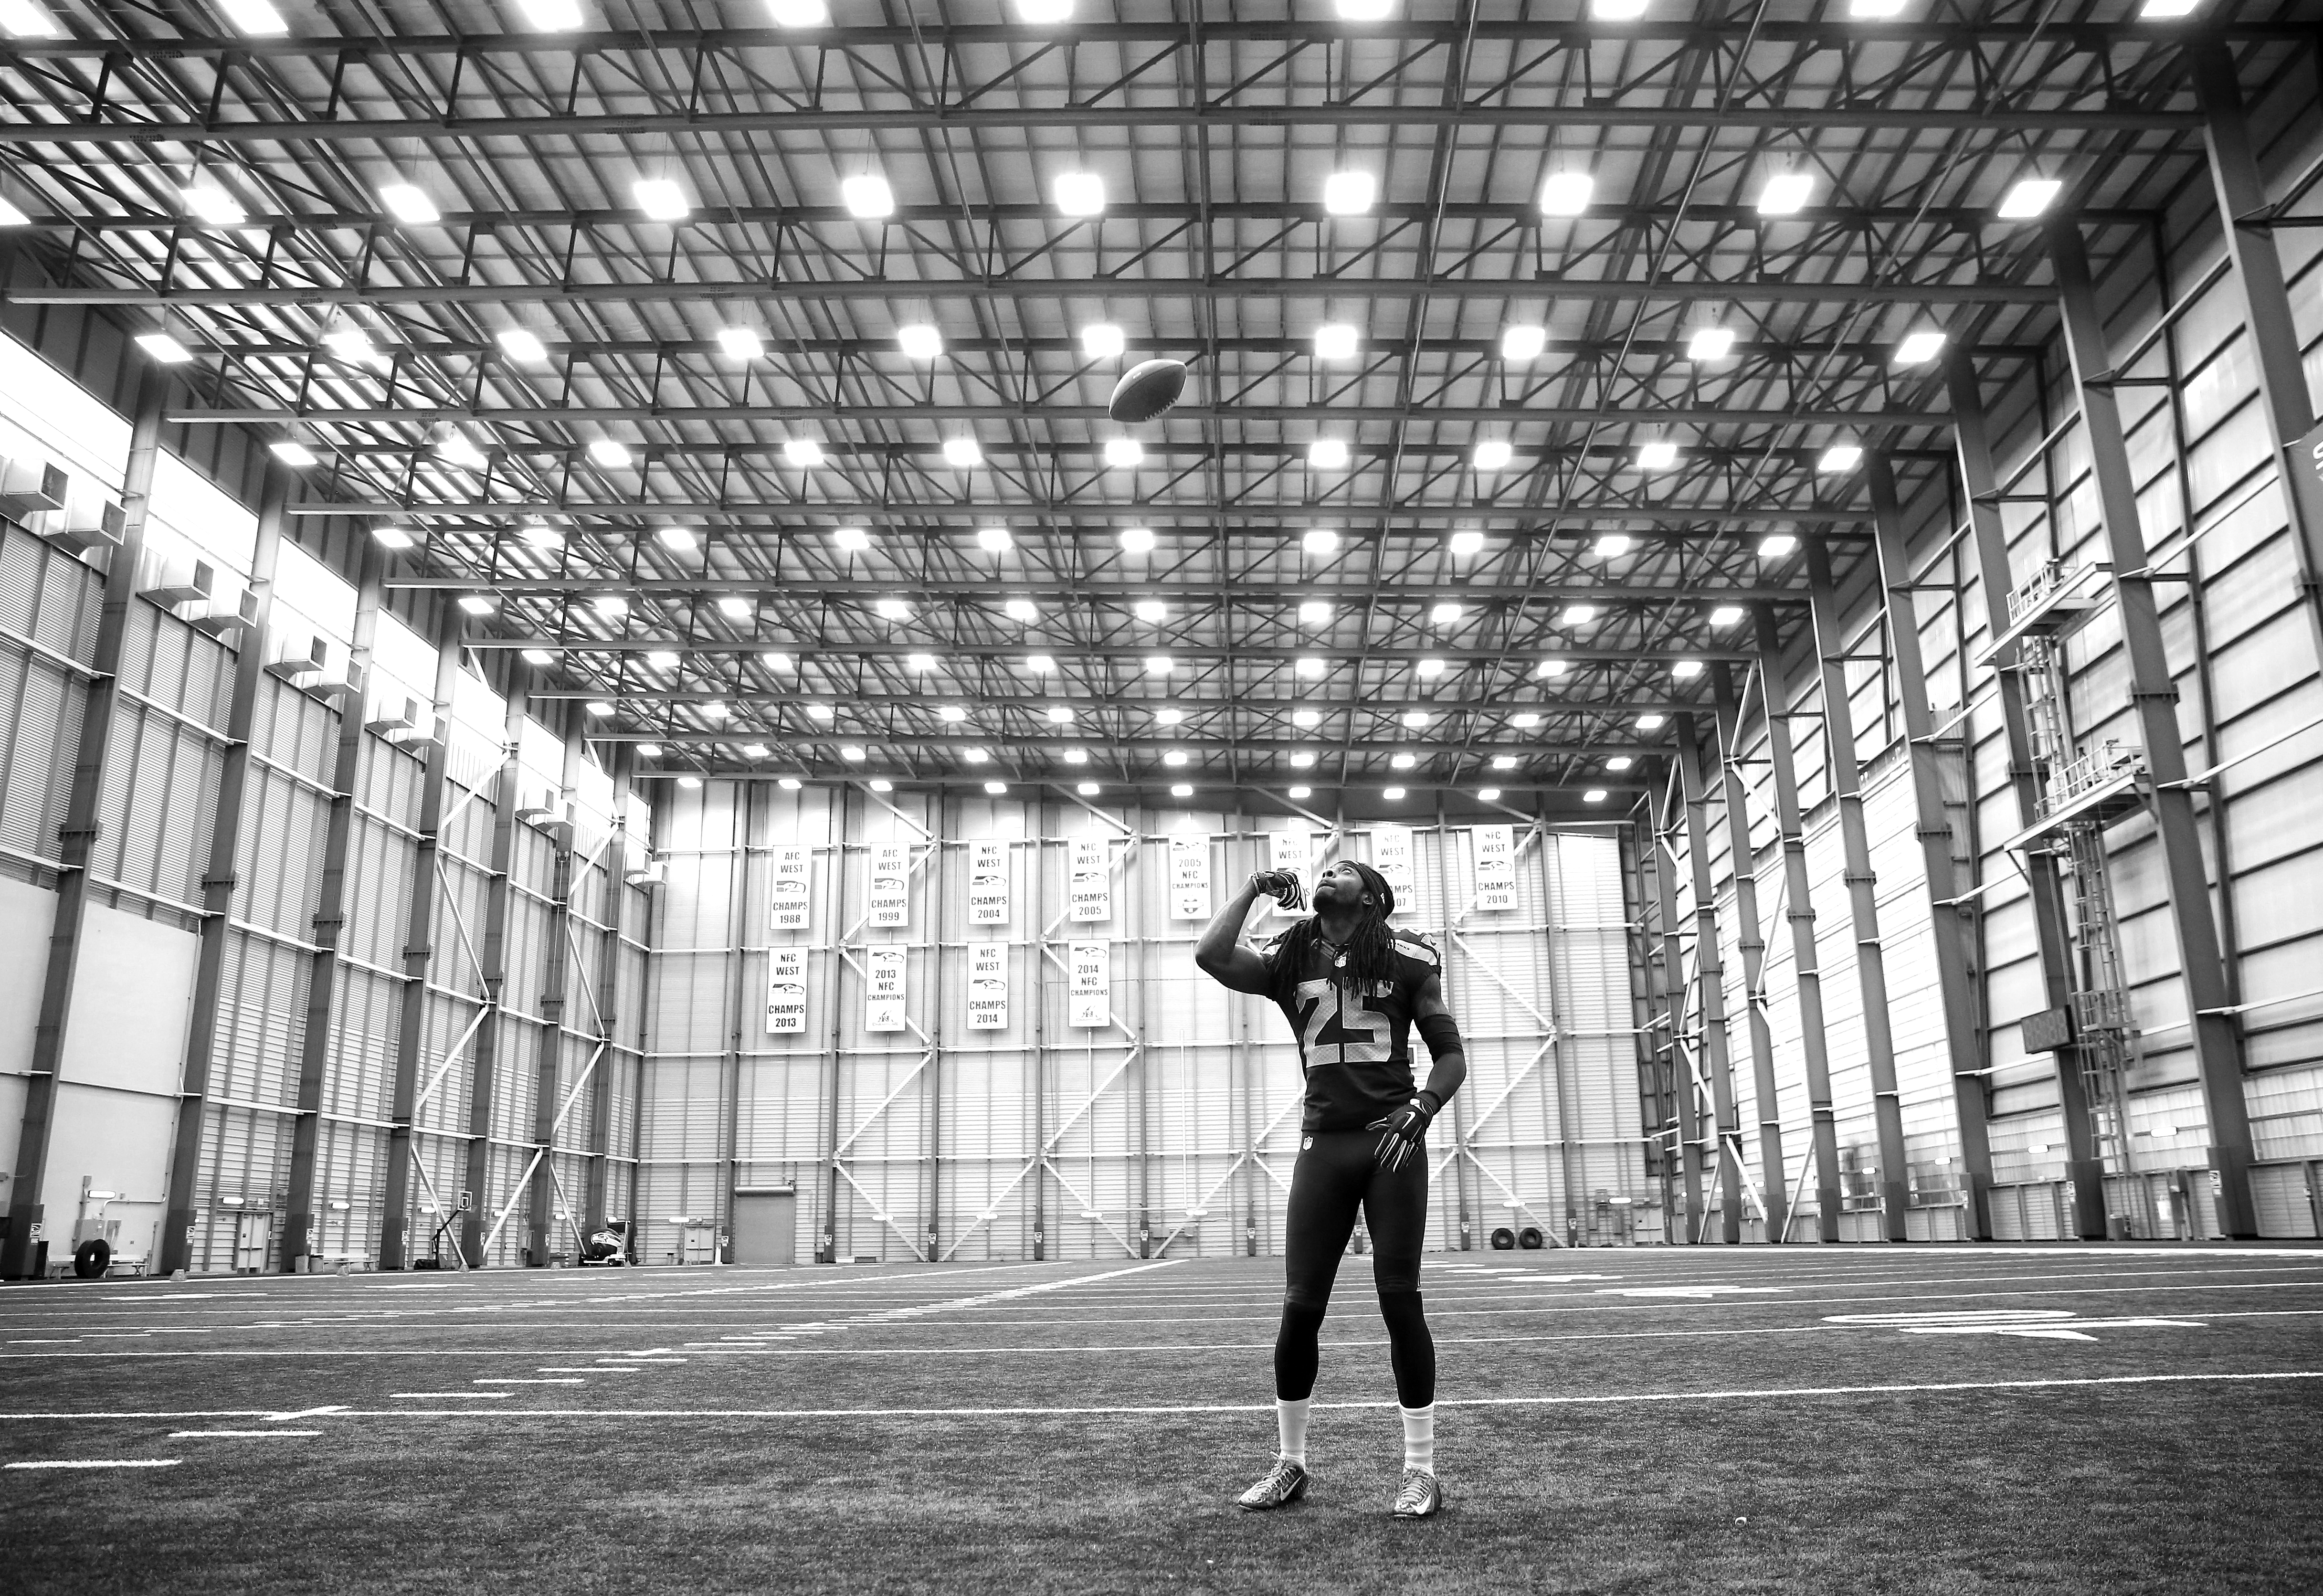 Richard Sherman of the Seattle Seahawks in Seattle, WA on June 8, 2016. (Photo by Jed Jacobsohn for the Players' Tribune)